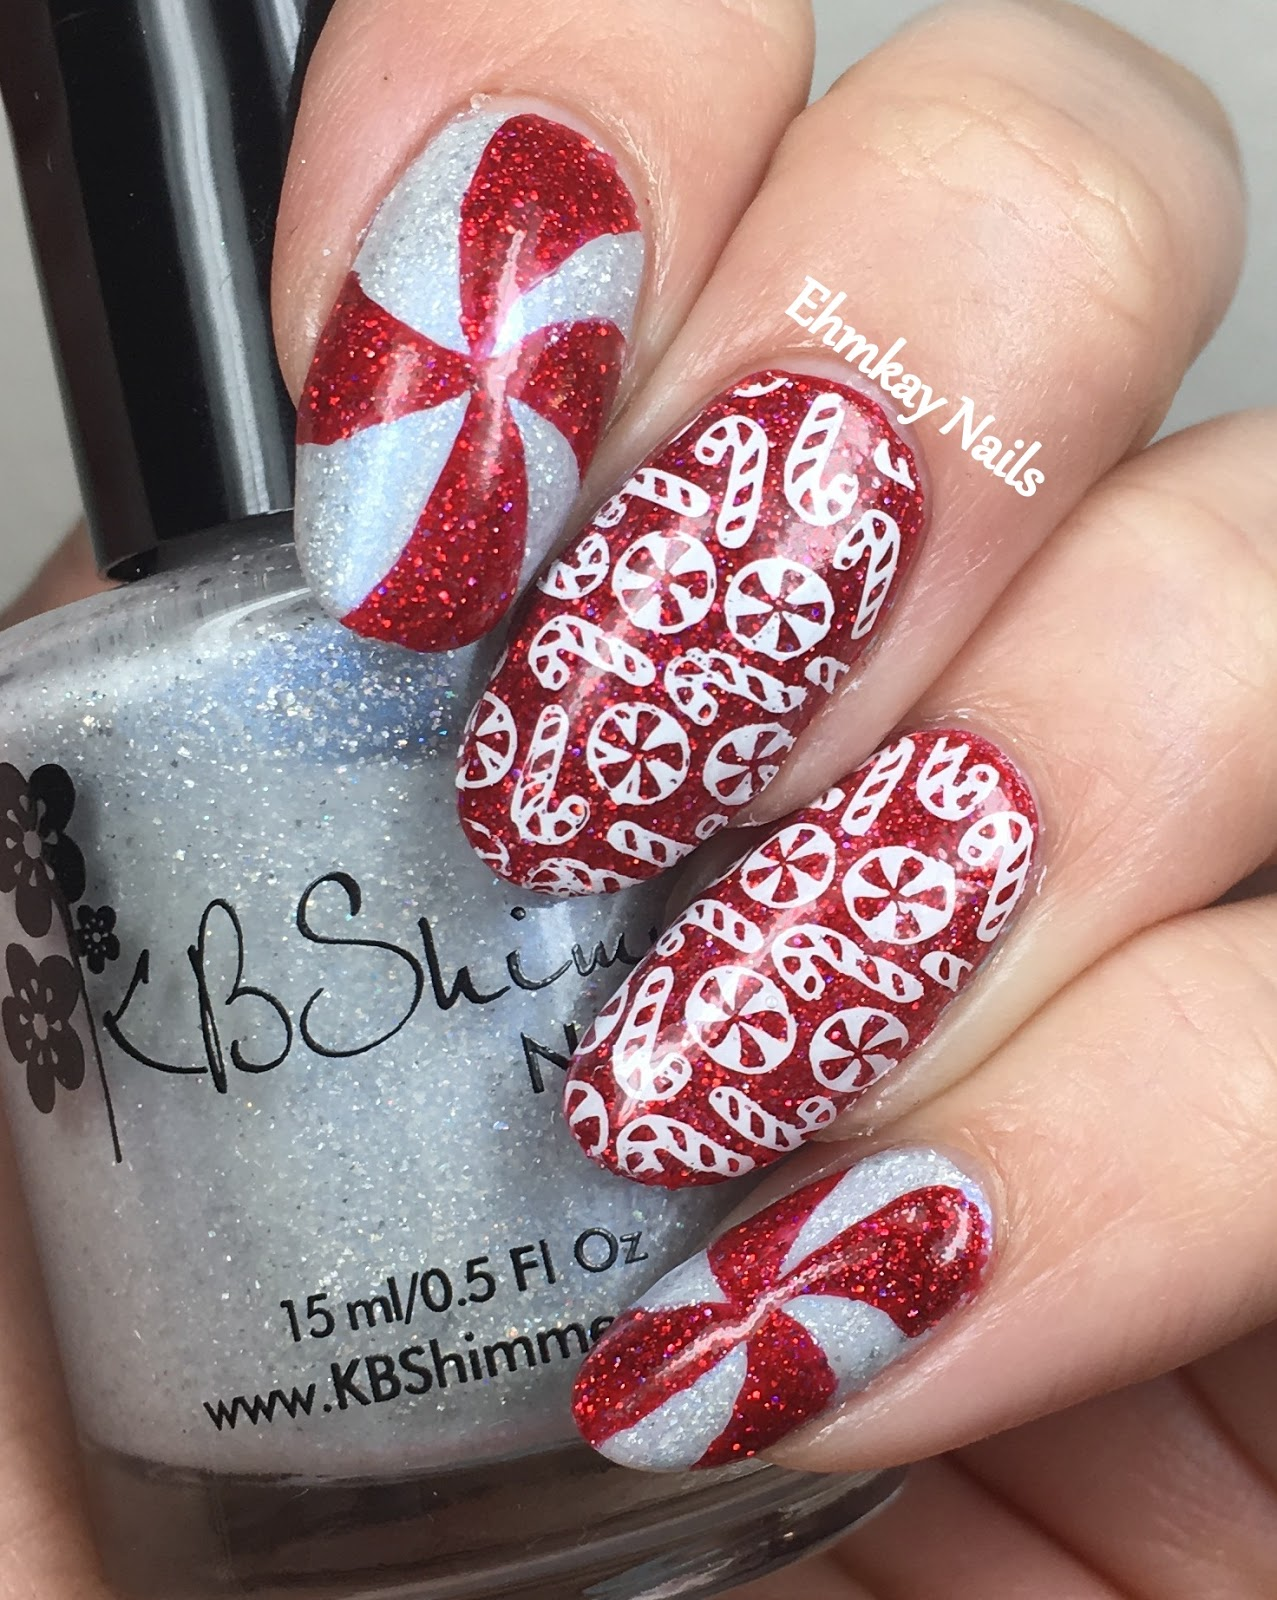 Ehmkay Nails Winter Nail Art Challenge Candy Canes And Peppermint